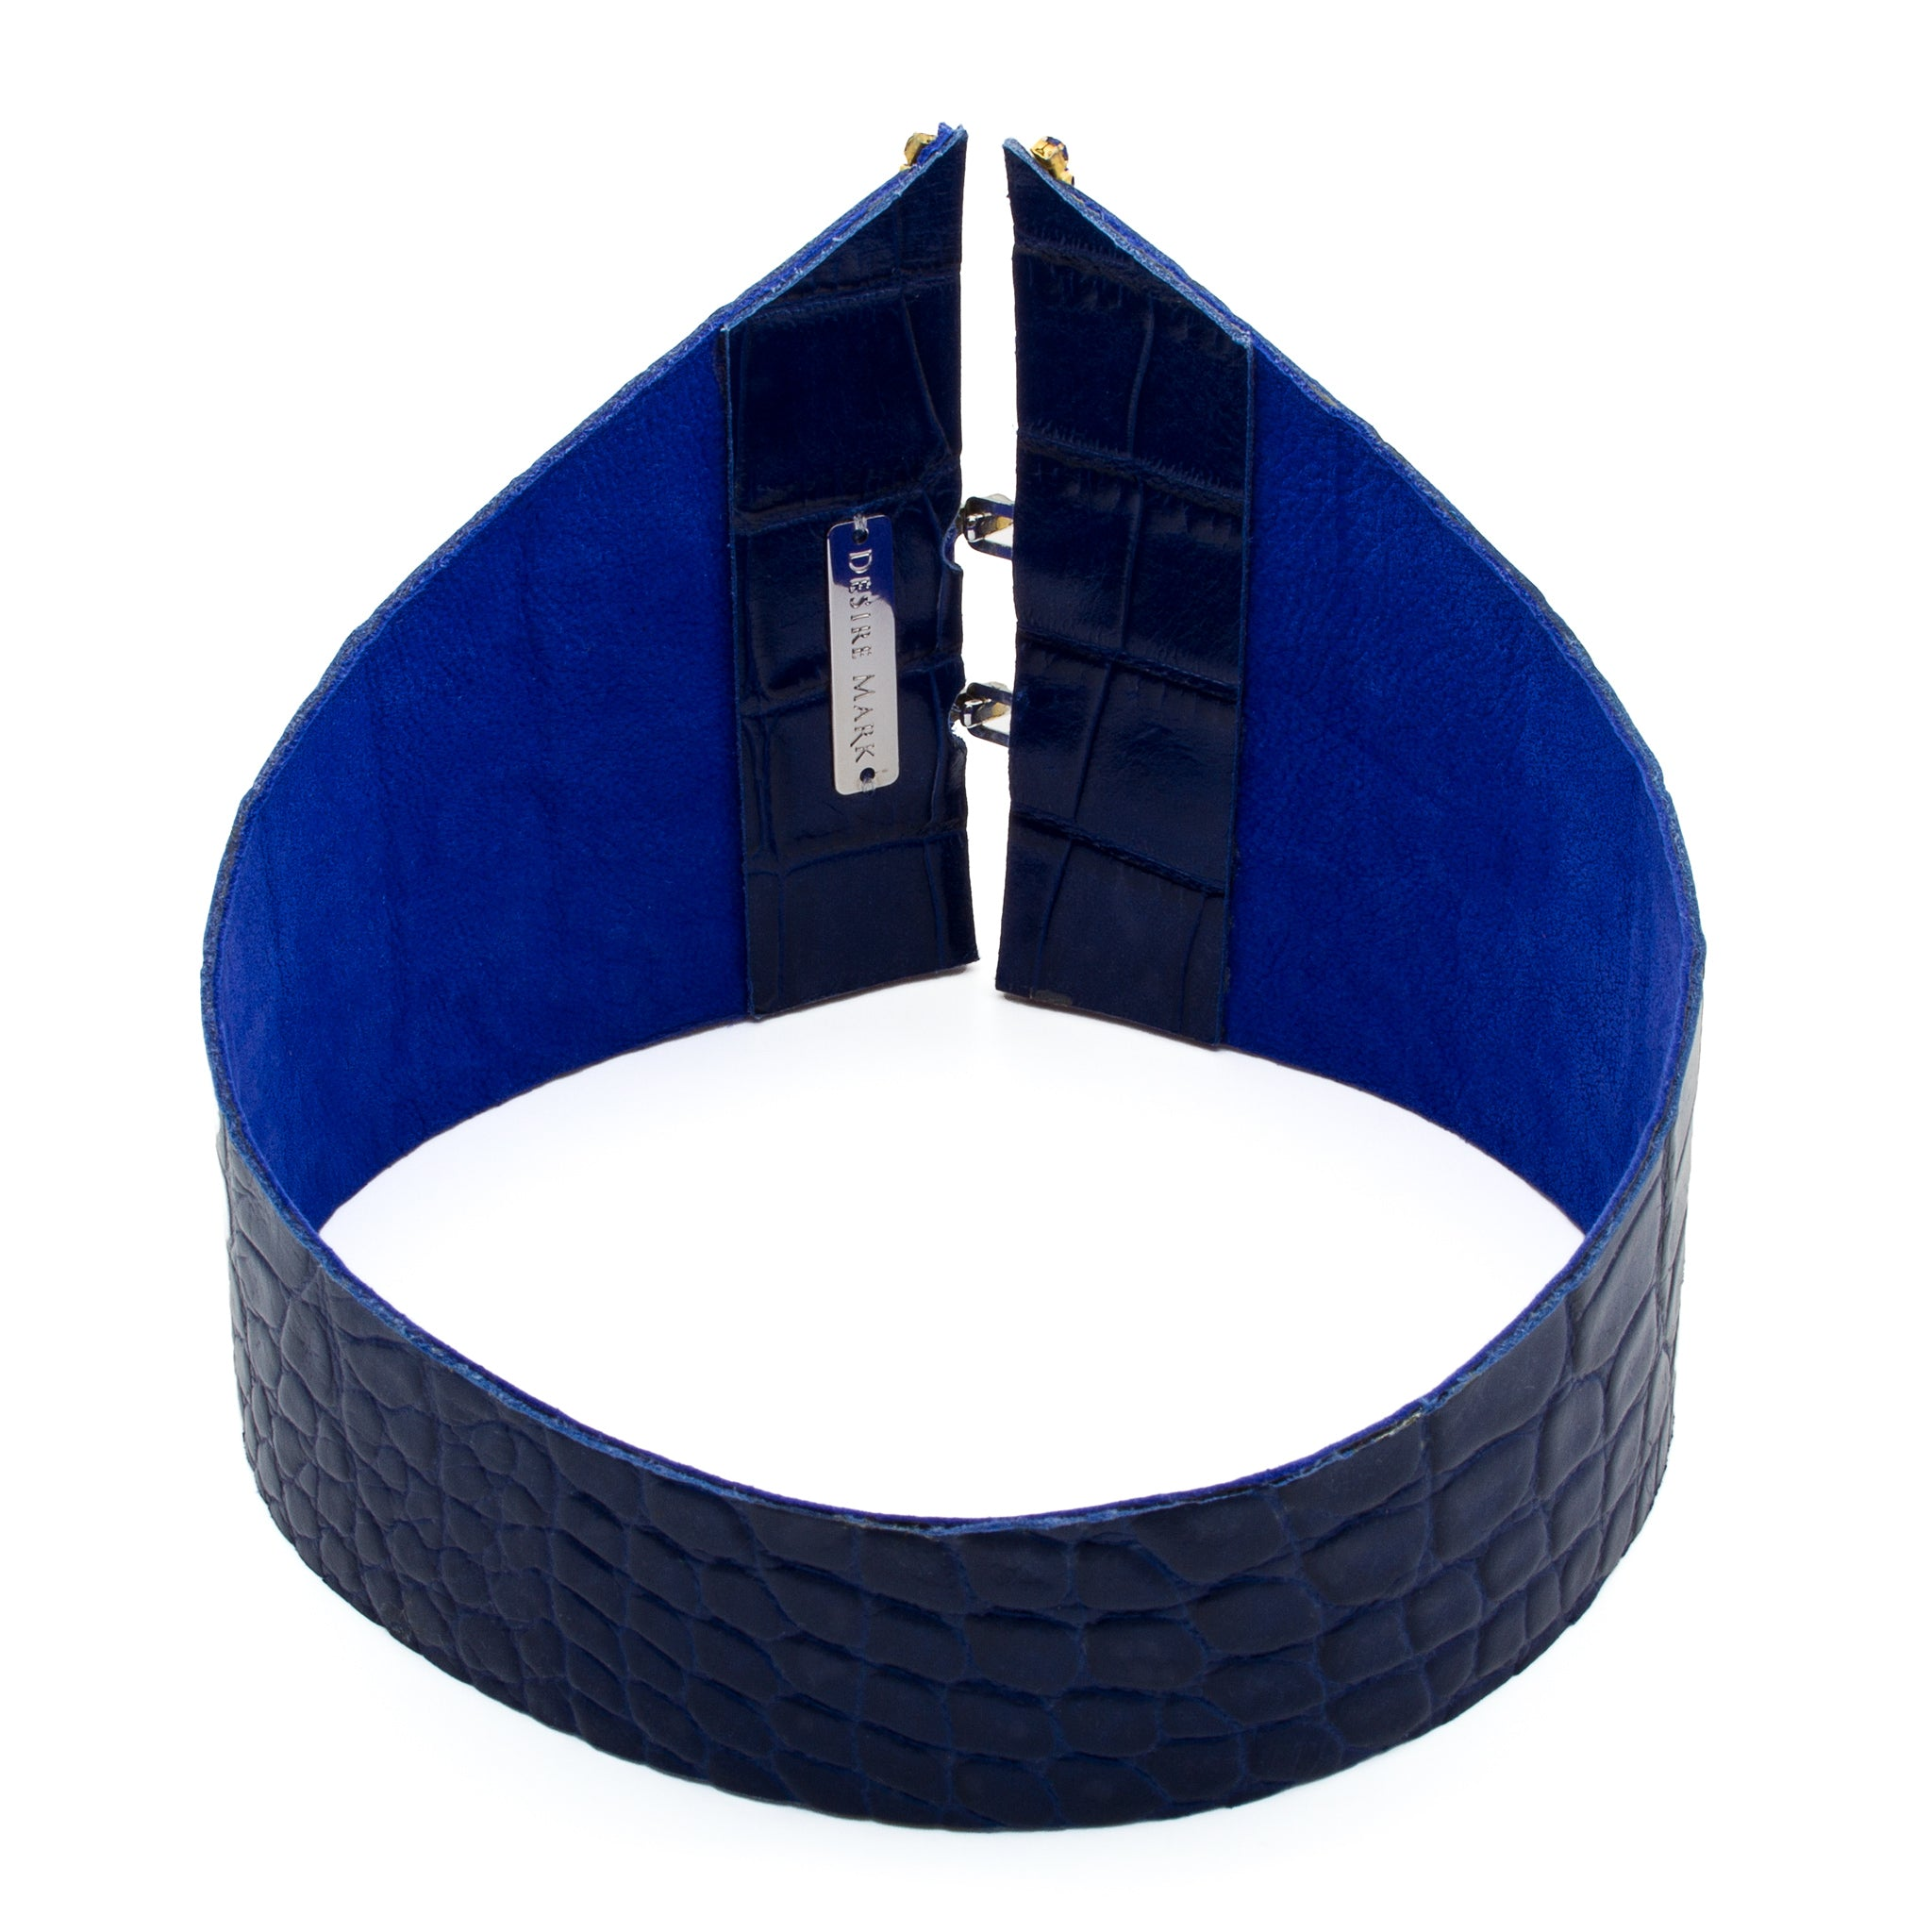 'Blue Collar' Chocker